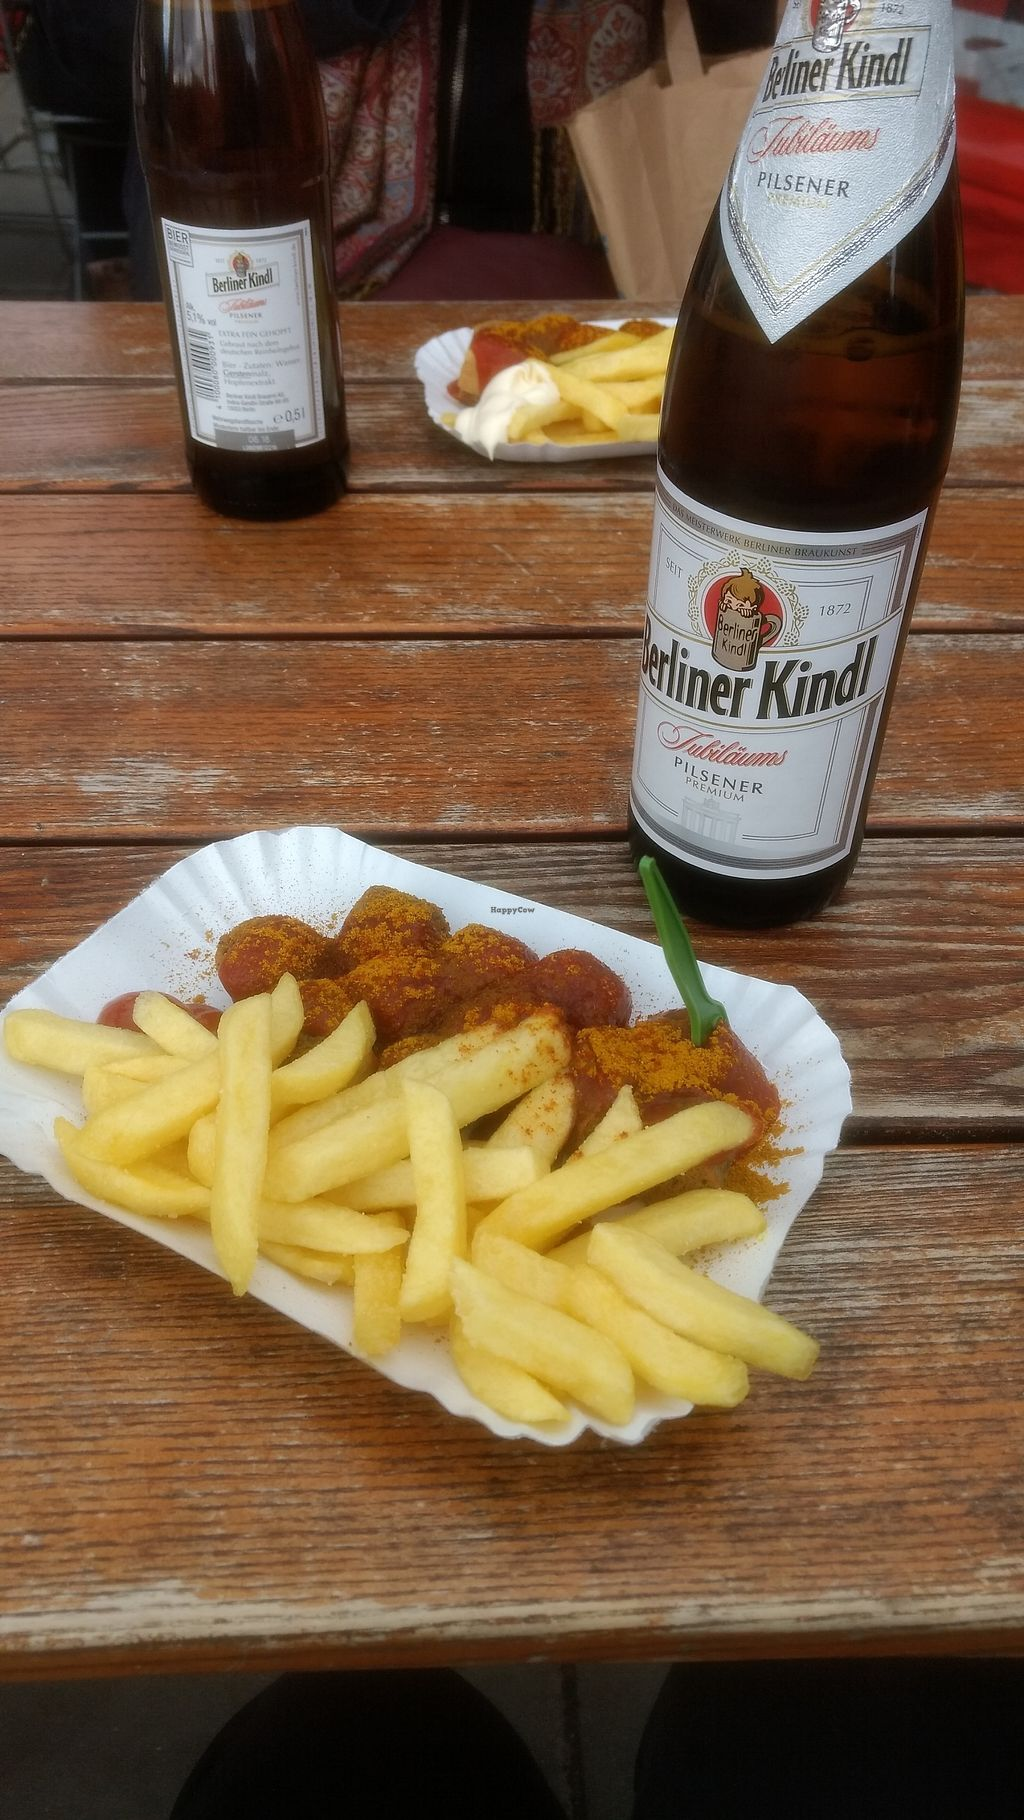 """Photo of Curry at the Wall - Food Stand  by <a href=""""/members/profile/VeggiKitty"""">VeggiKitty</a> <br/>Vegan currywurst and chips (in the background meat currywurst and chips)  <br/> October 17, 2017  - <a href='/contact/abuse/image/77725/316039'>Report</a>"""